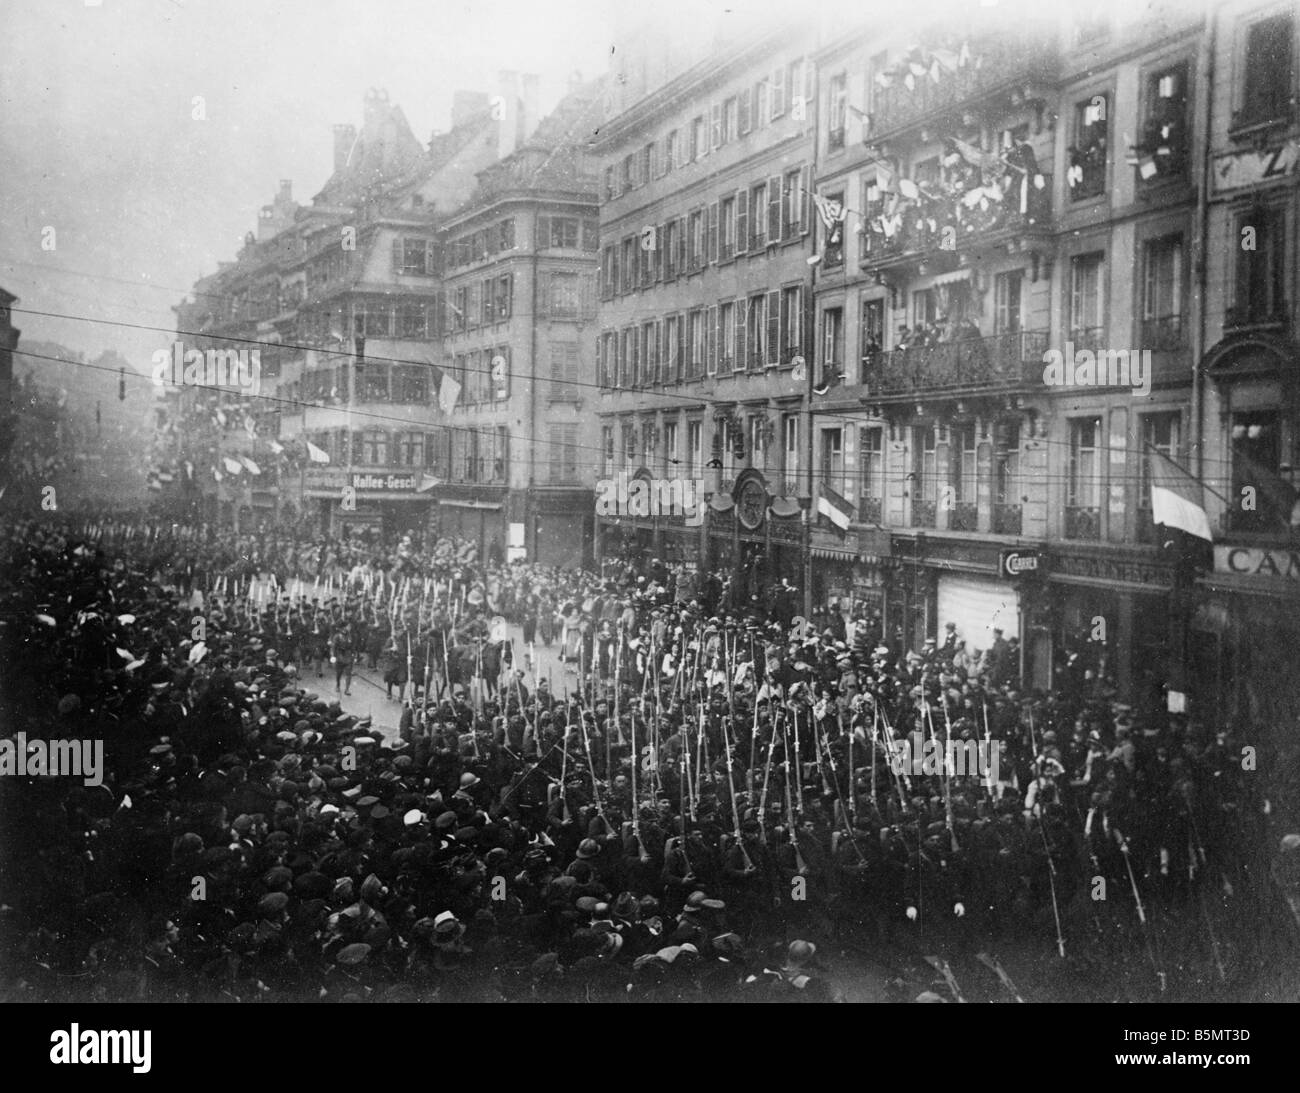 9FK 1918 11 22 A1 2 French troops in Strasbourg 1918 Photo World War I 1914 18 End of the War Strasbourg is occupied - Stock Image